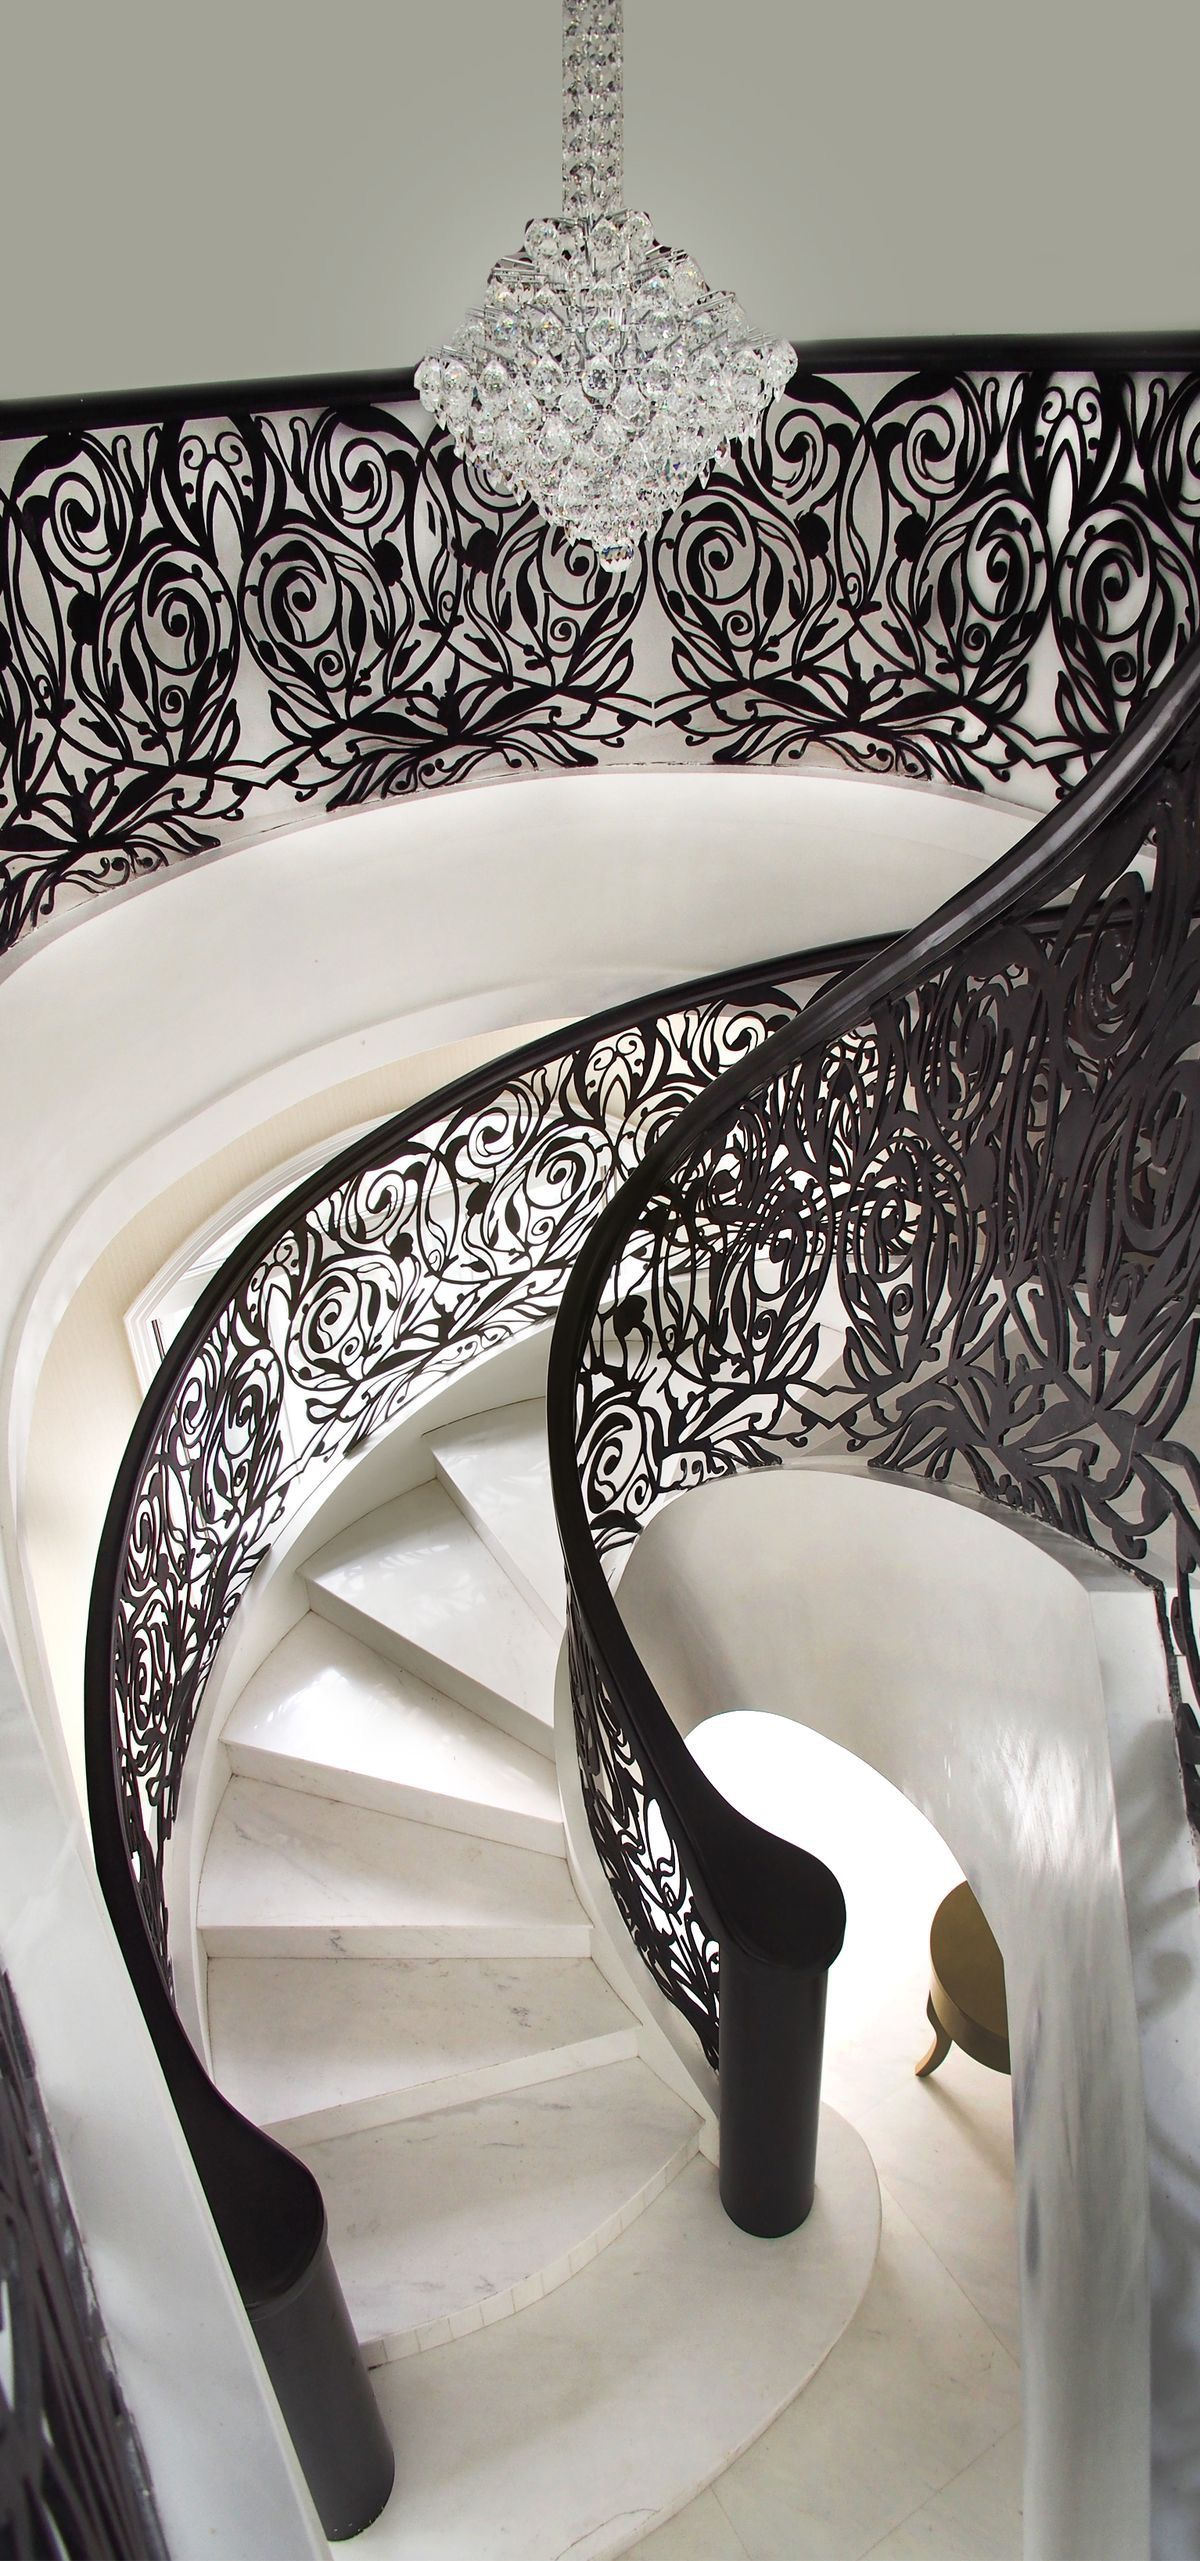 Stair Designed By Marques And Jordy London Shanghai, Qg Construction